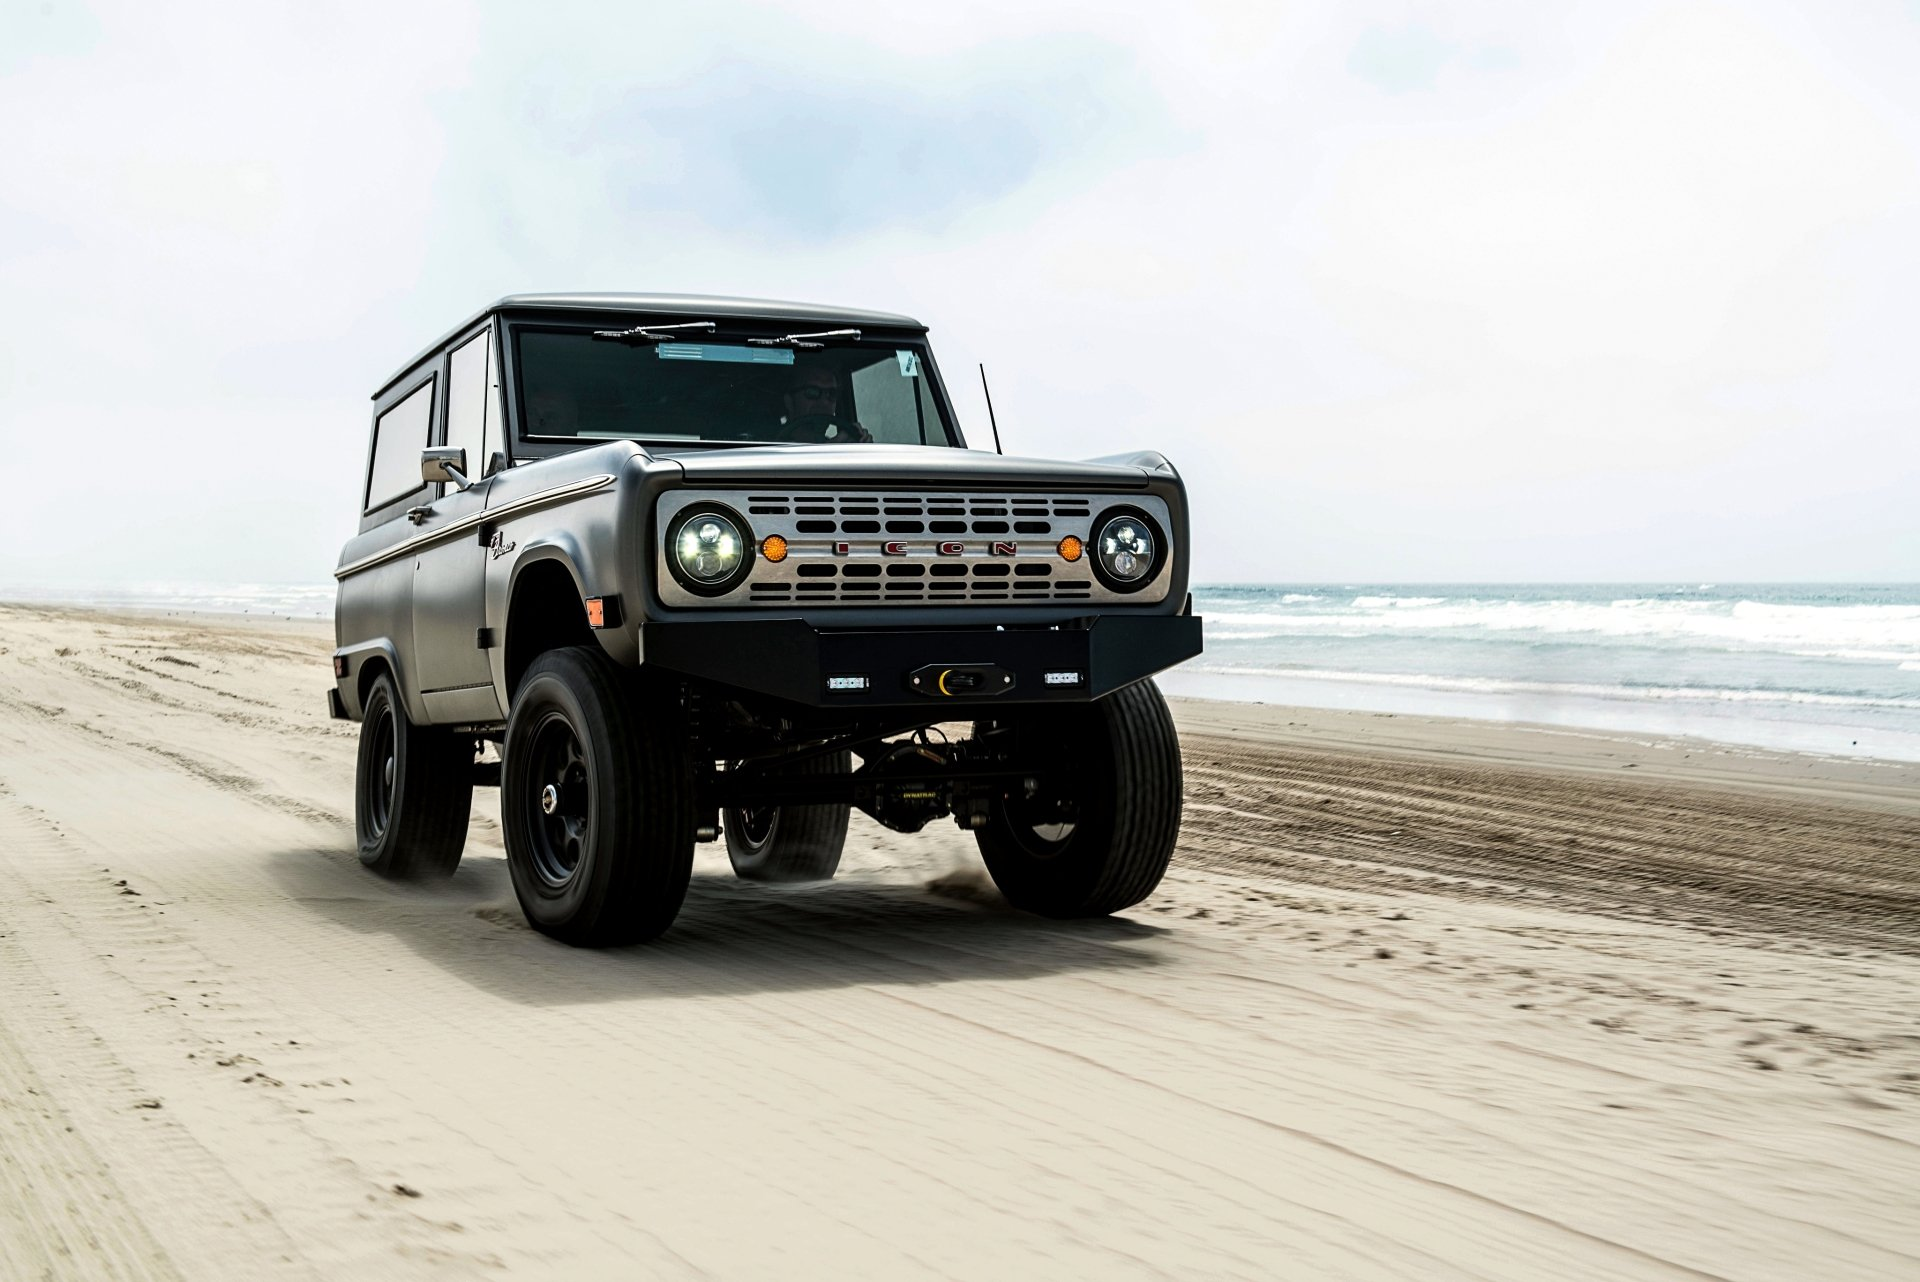 Ford Bronco 4k Ultra HD Wallpaper | Background Image ...